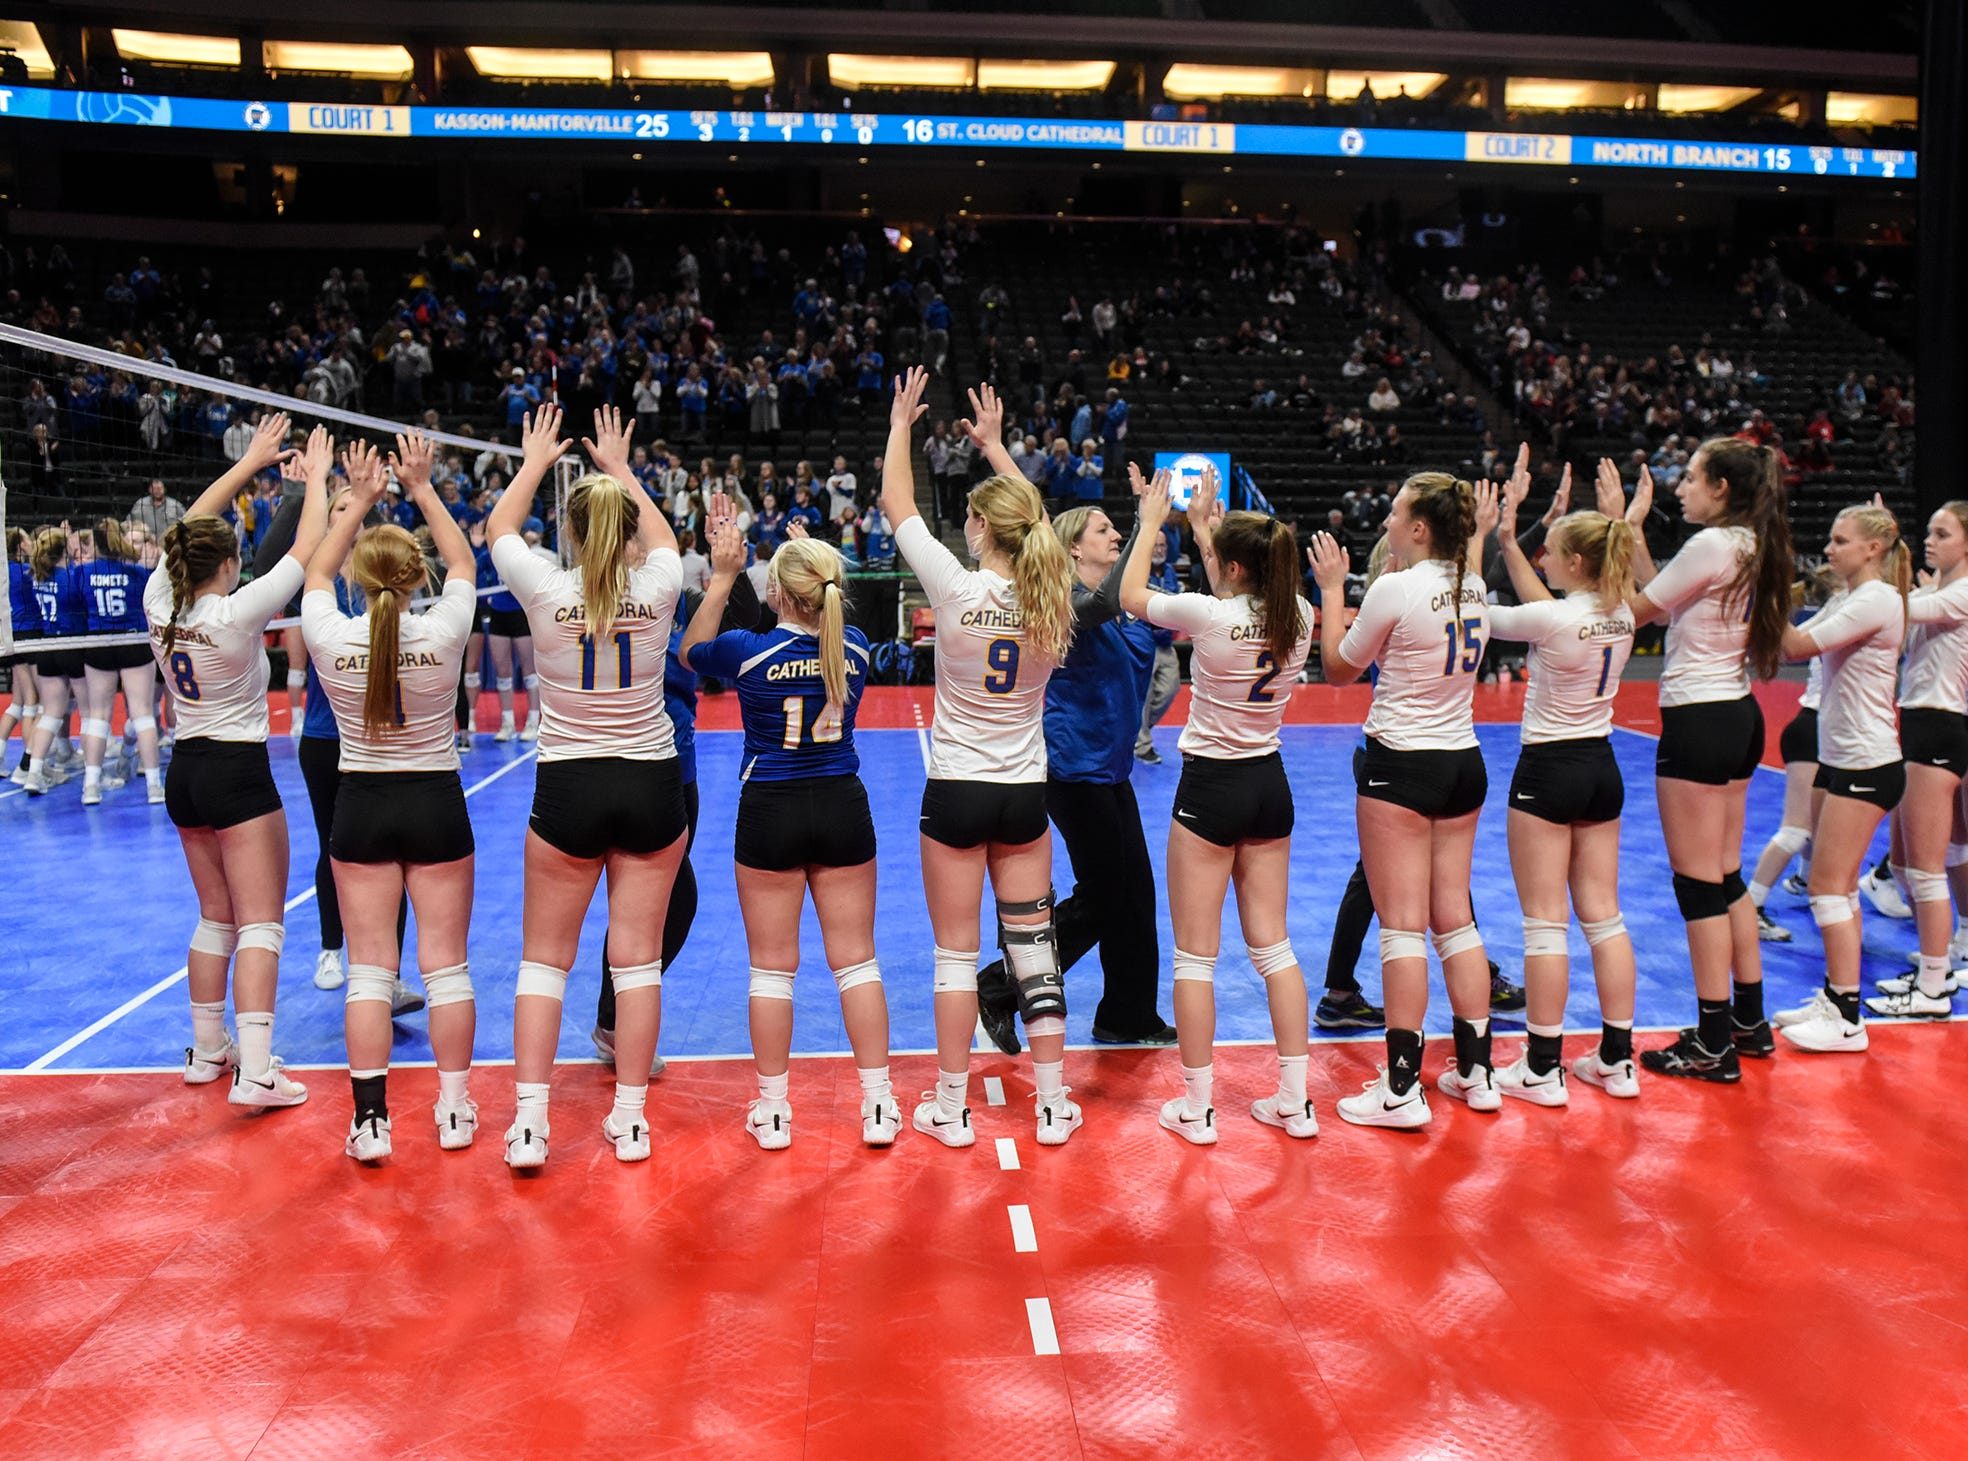 Catehdral players line up following the state Class 2A quarterfinals Thursday, Nov. 8, at the Xcel Energy Center in St. Paul.